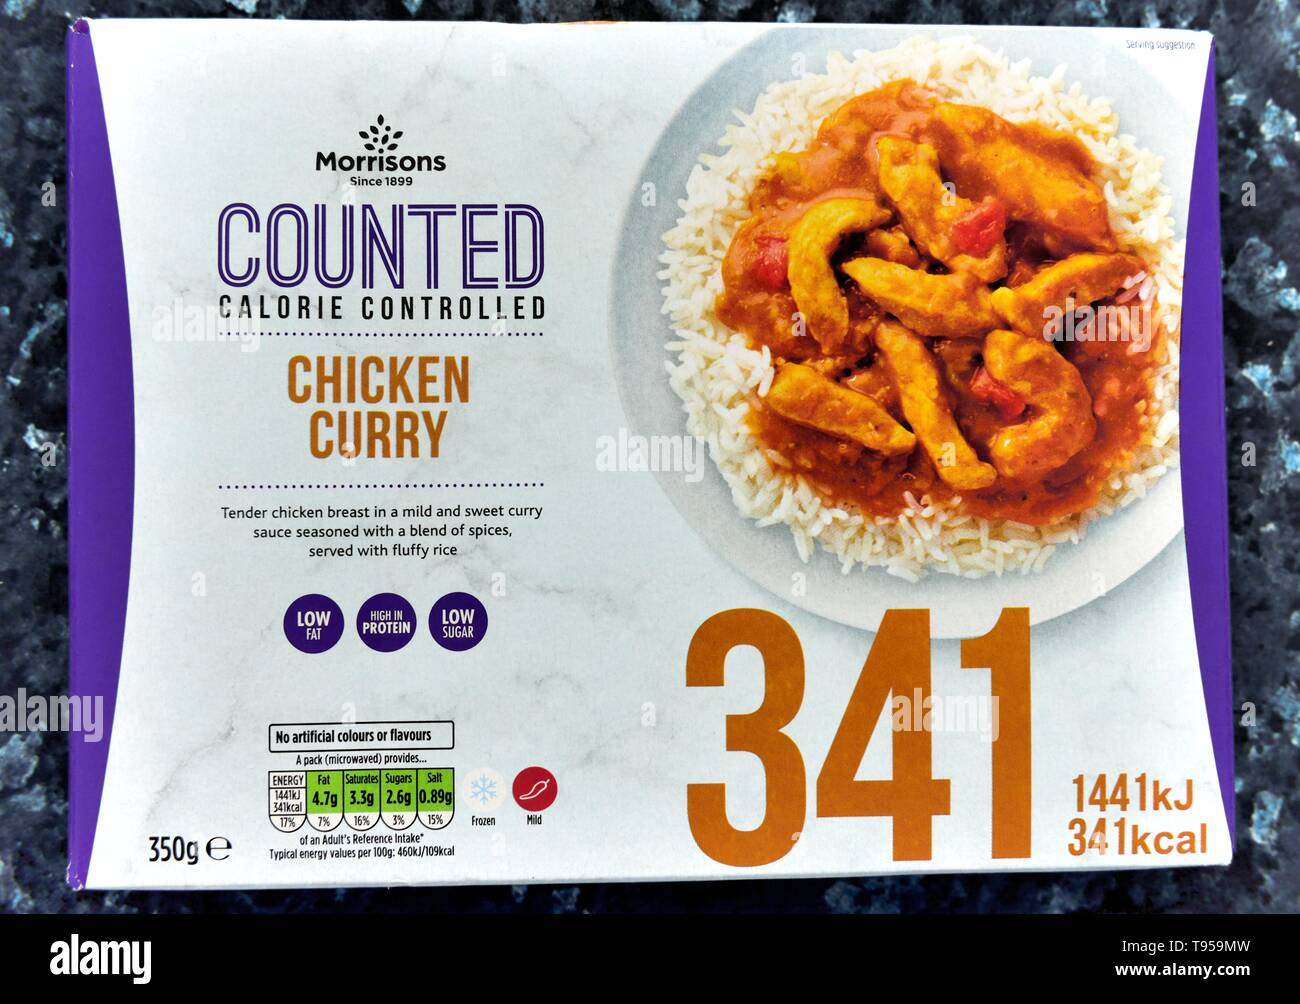 https www alamy com calorie controlledchicken curry microwave ready meal341kcallow fatlow sugar image246594457 html